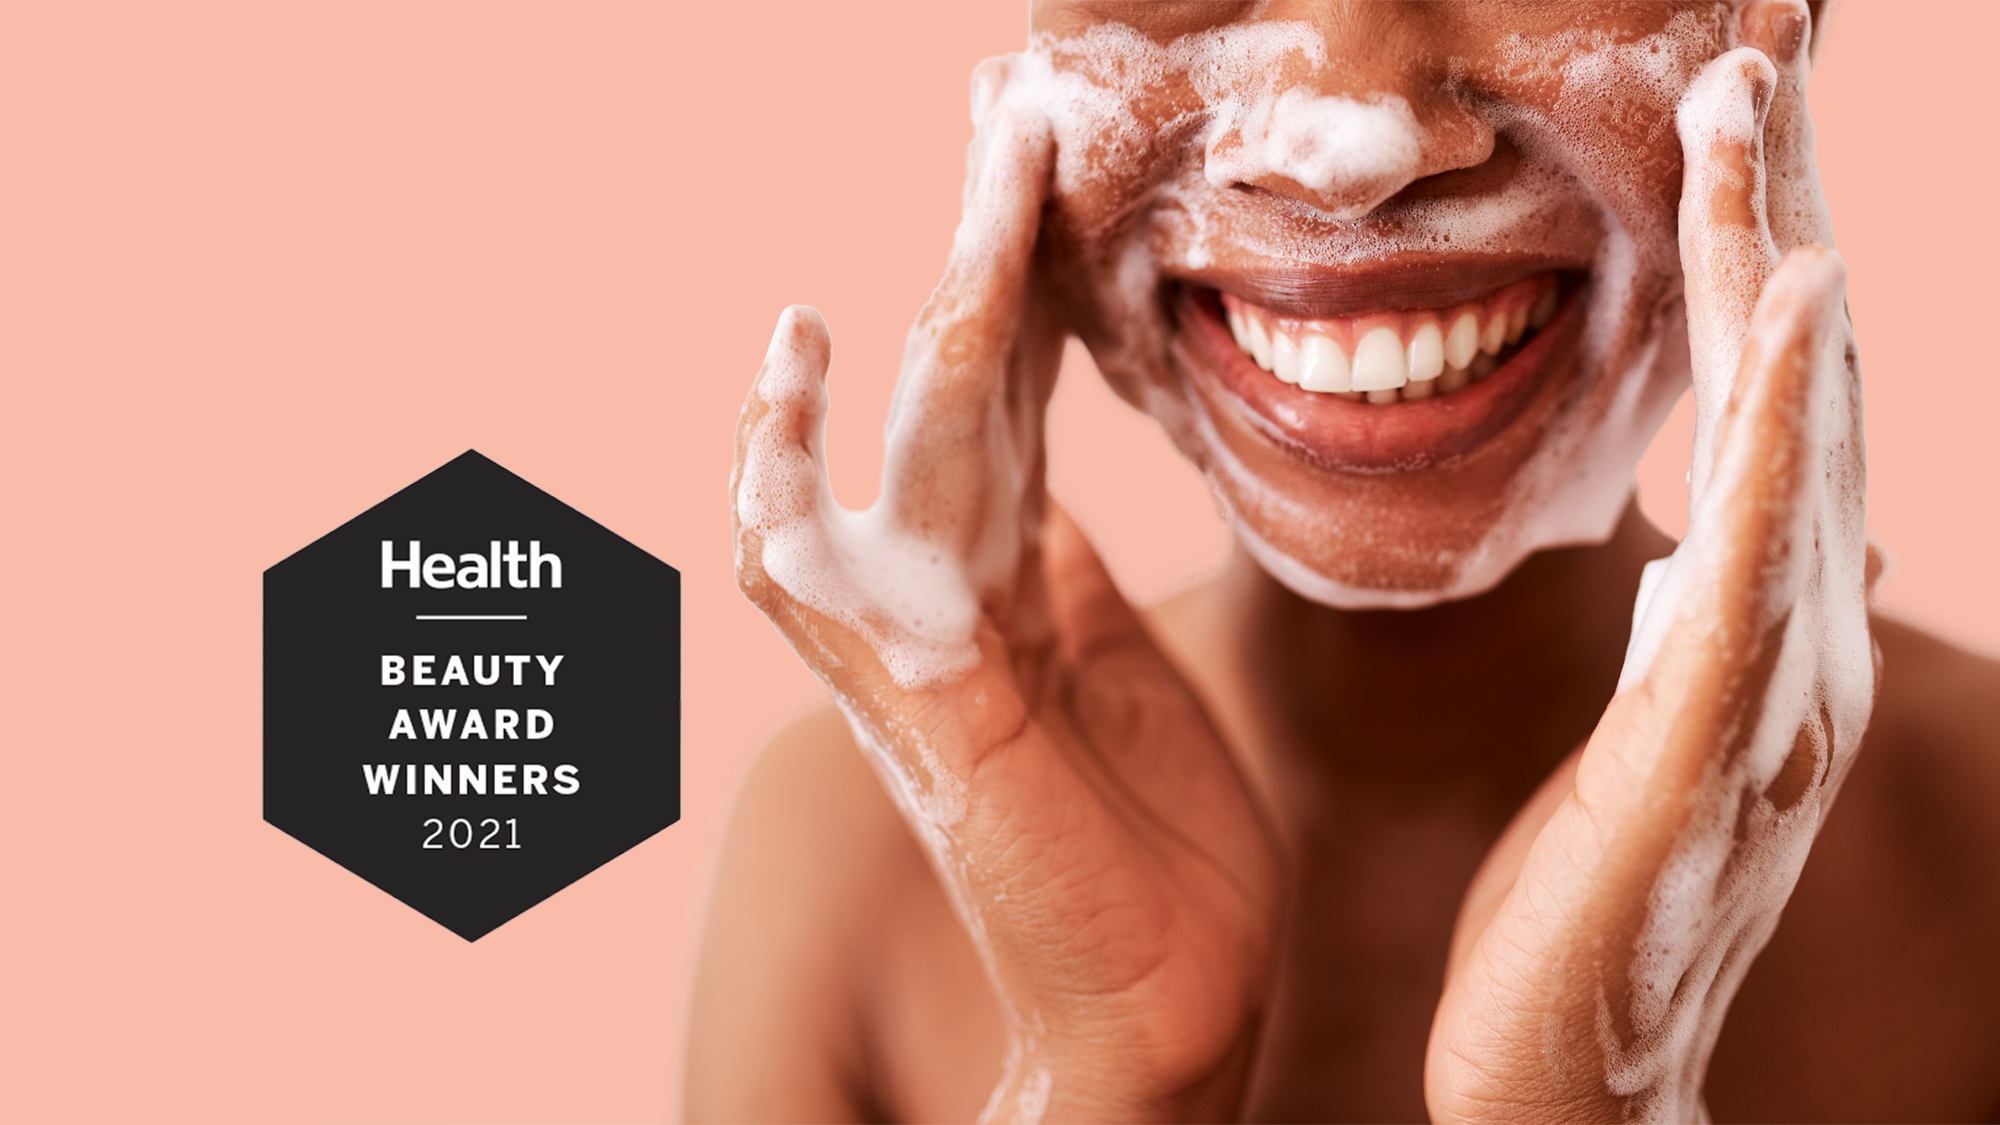 beauty awards , Studio shot of an unrecognizable woman washing her face against a white background